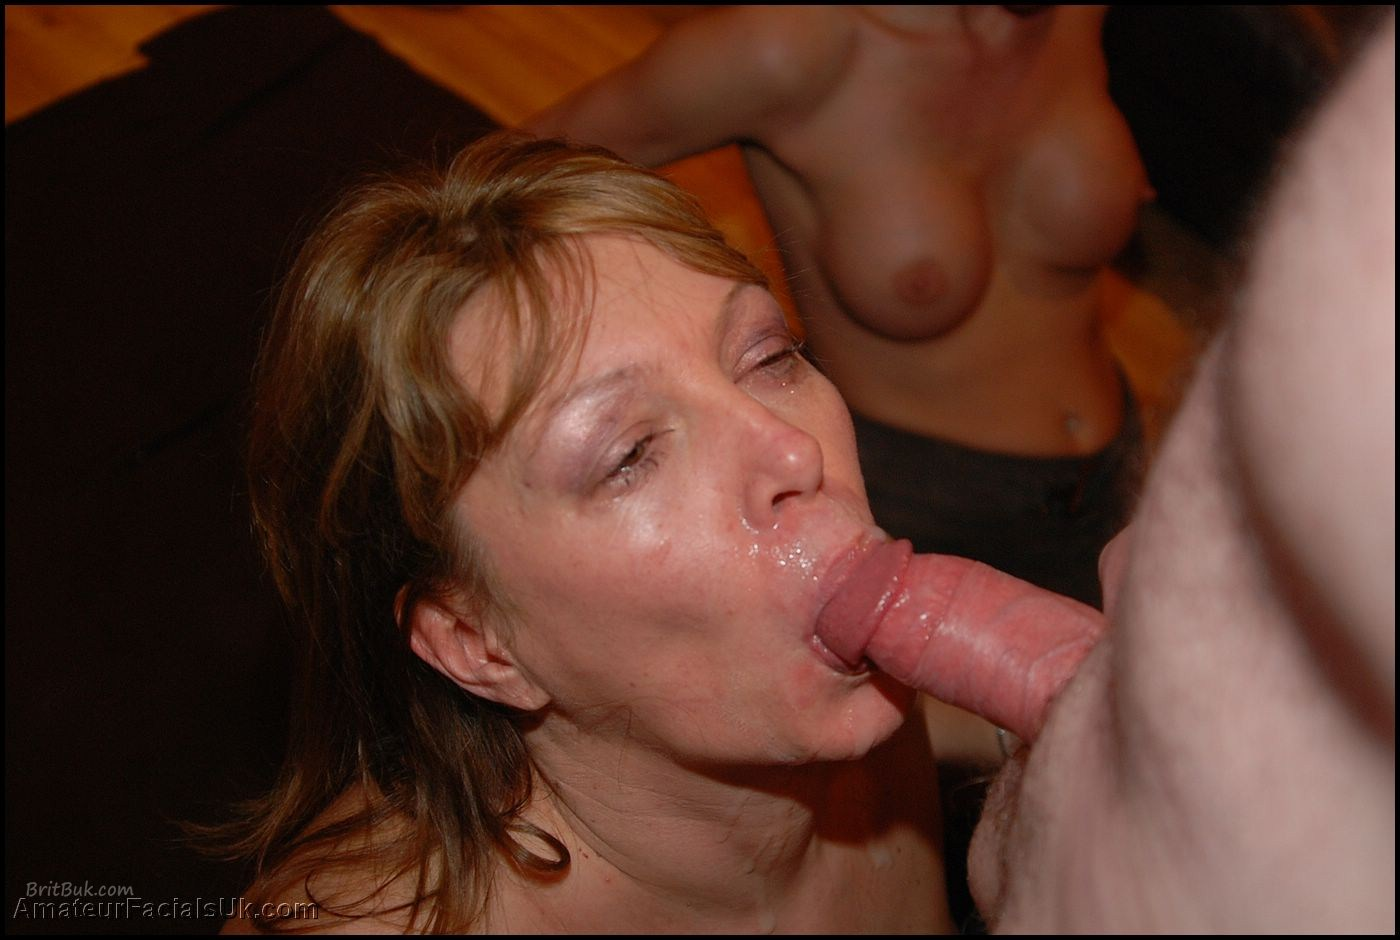 British milf nici stirling fucks when a friend helps out 6